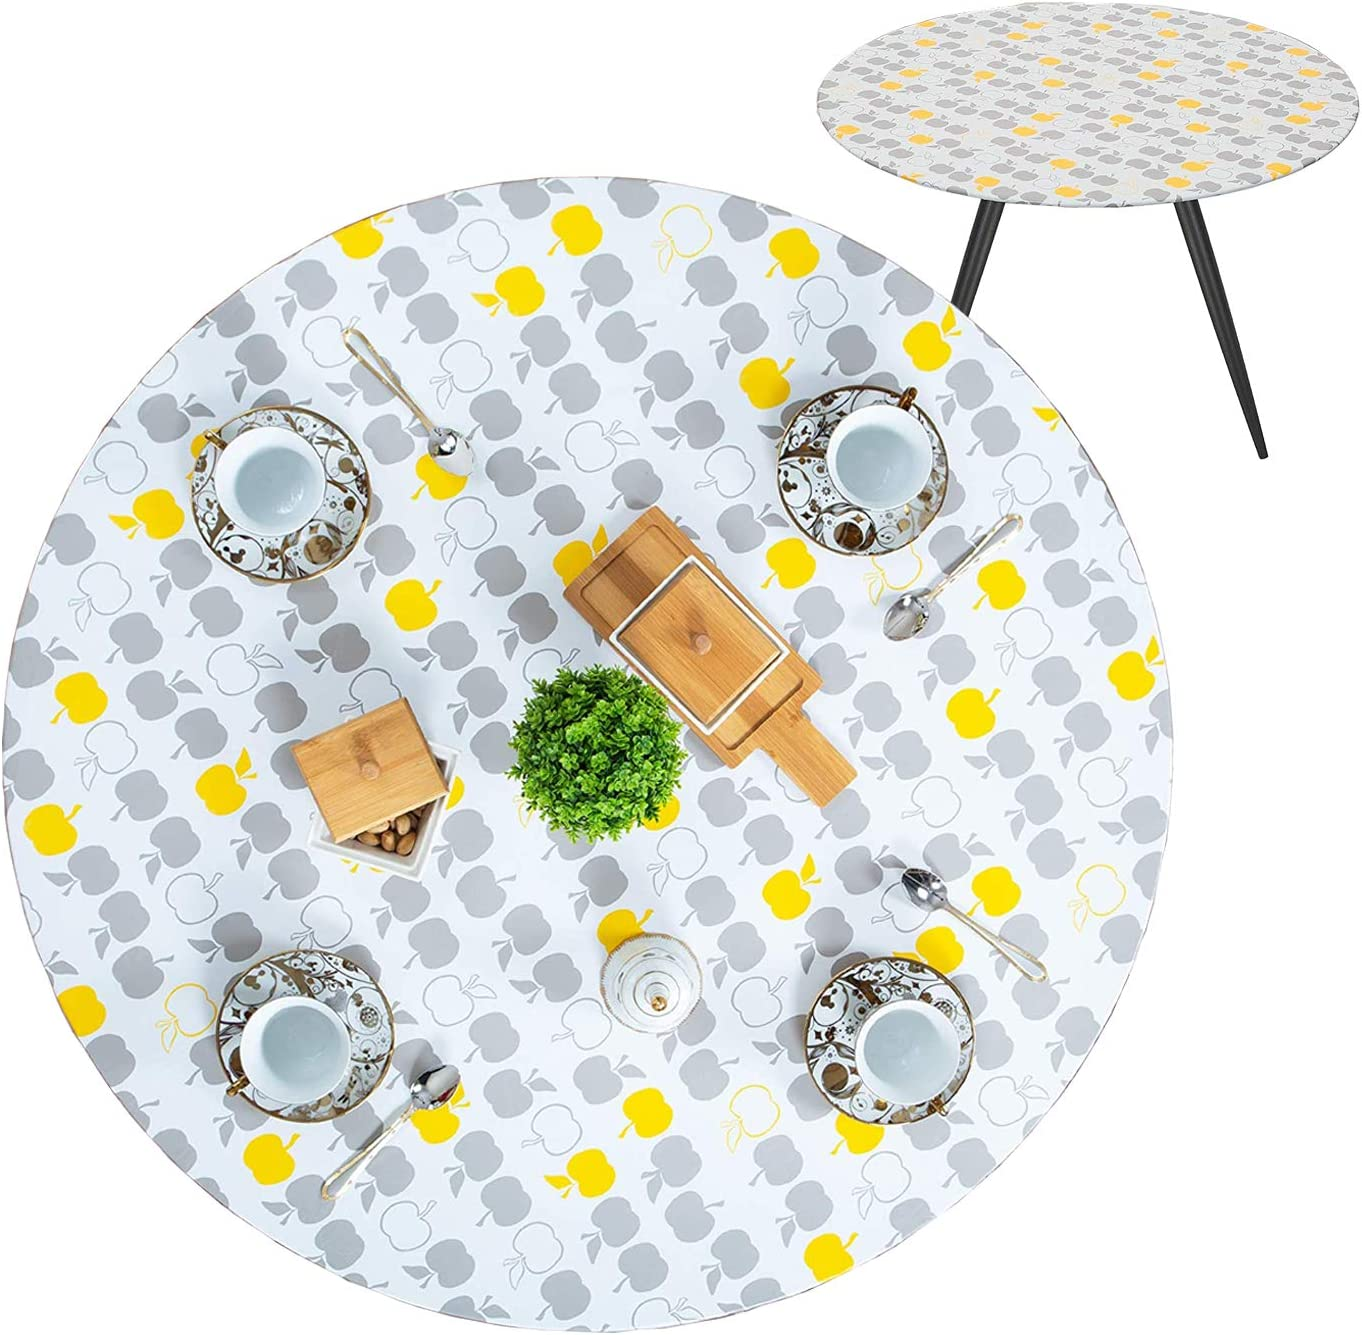 gisgfim Fitted Tablecloth Cover Outdoor/Indoor Vinyl Round Table Cover Waterproof Elastic Flannel Table Cloth Protector (Yellow Gray Apples, 40-44 Inch)